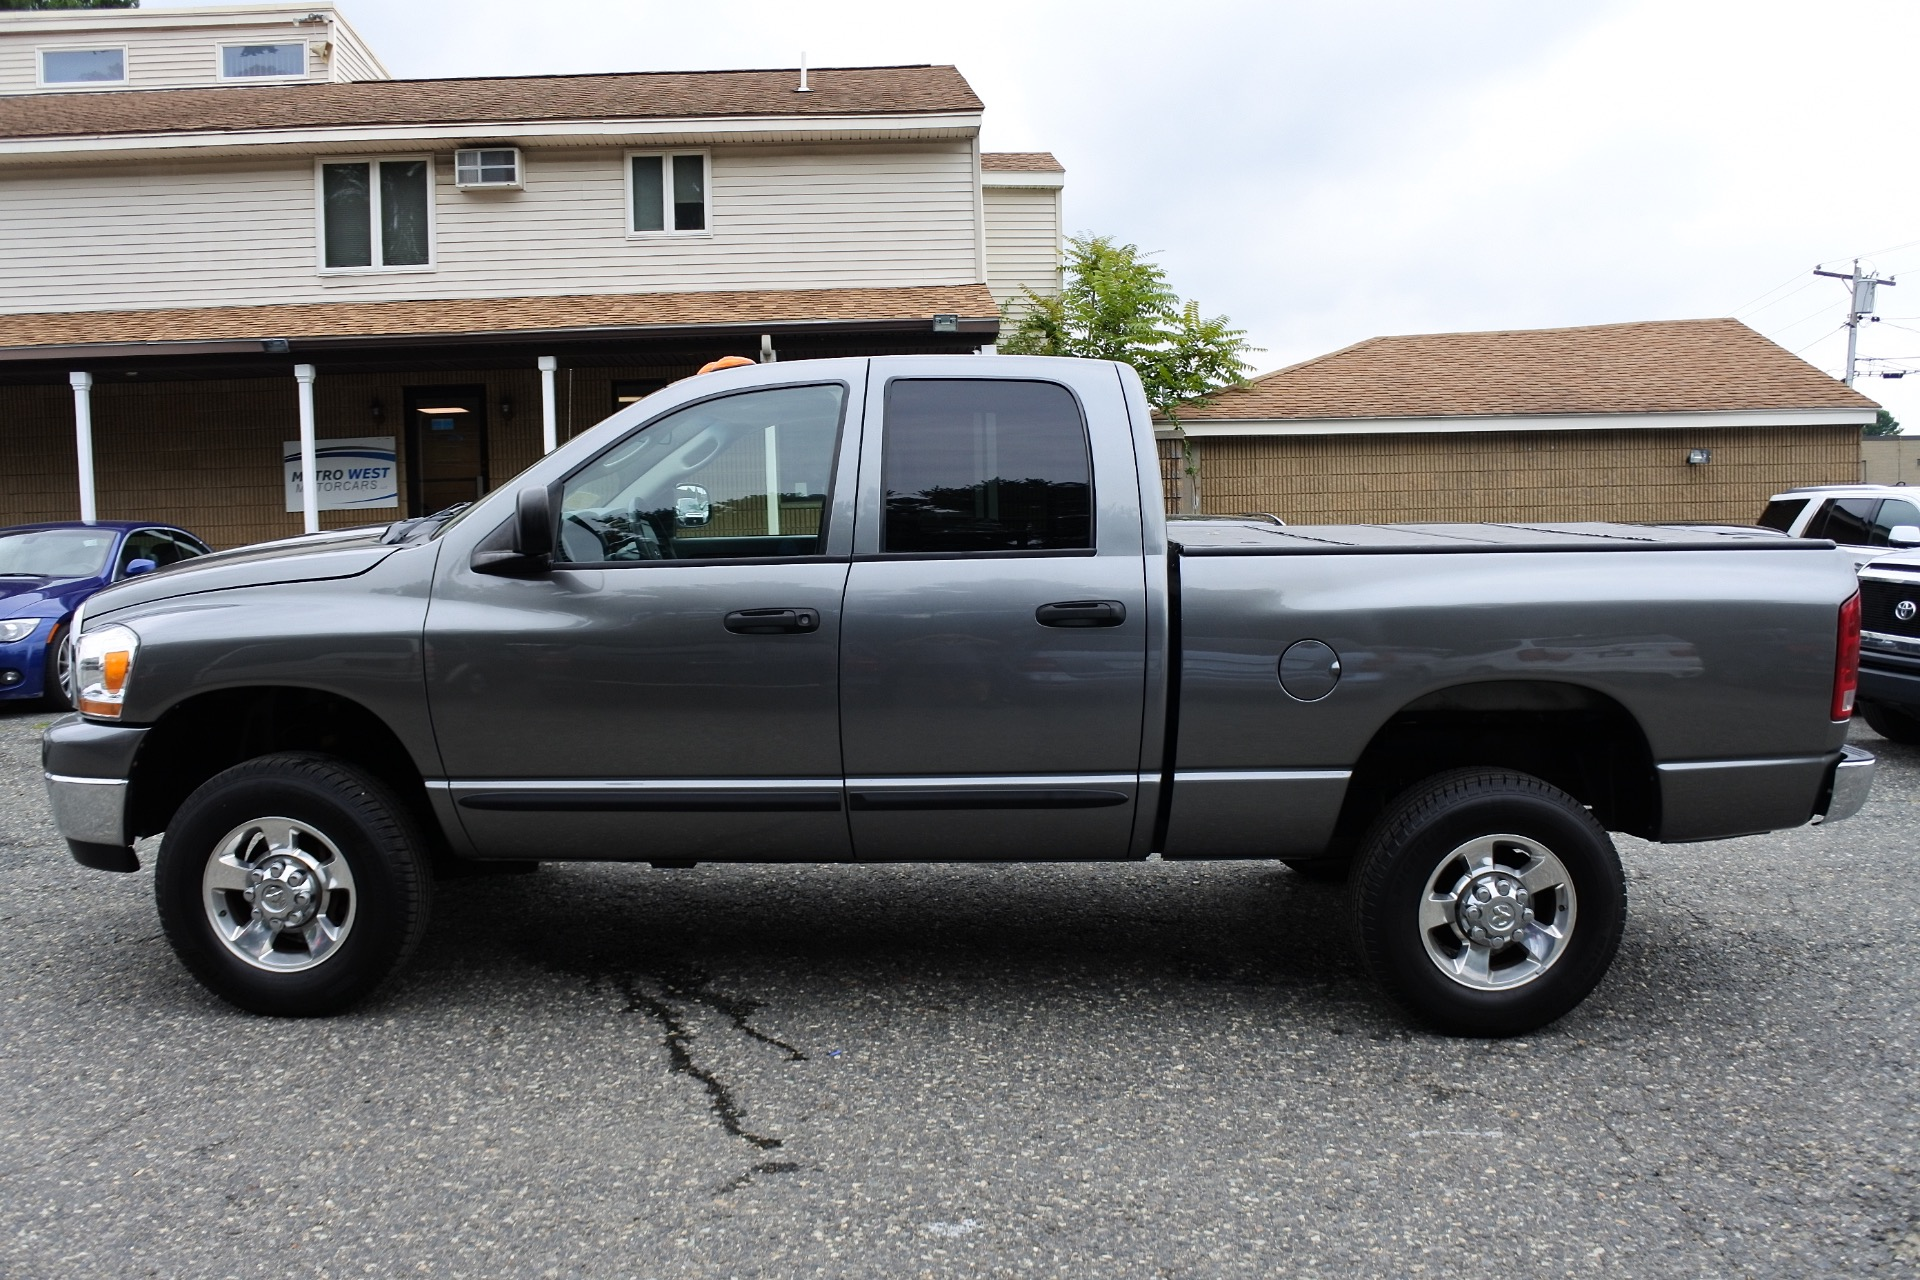 Used 2006 Dodge Ram 2500 4dr Quad Cab 140.5 4WD SLT Used 2006 Dodge Ram 2500 4dr Quad Cab 140.5 4WD SLT for sale  at Metro West Motorcars LLC in Shrewsbury MA 2